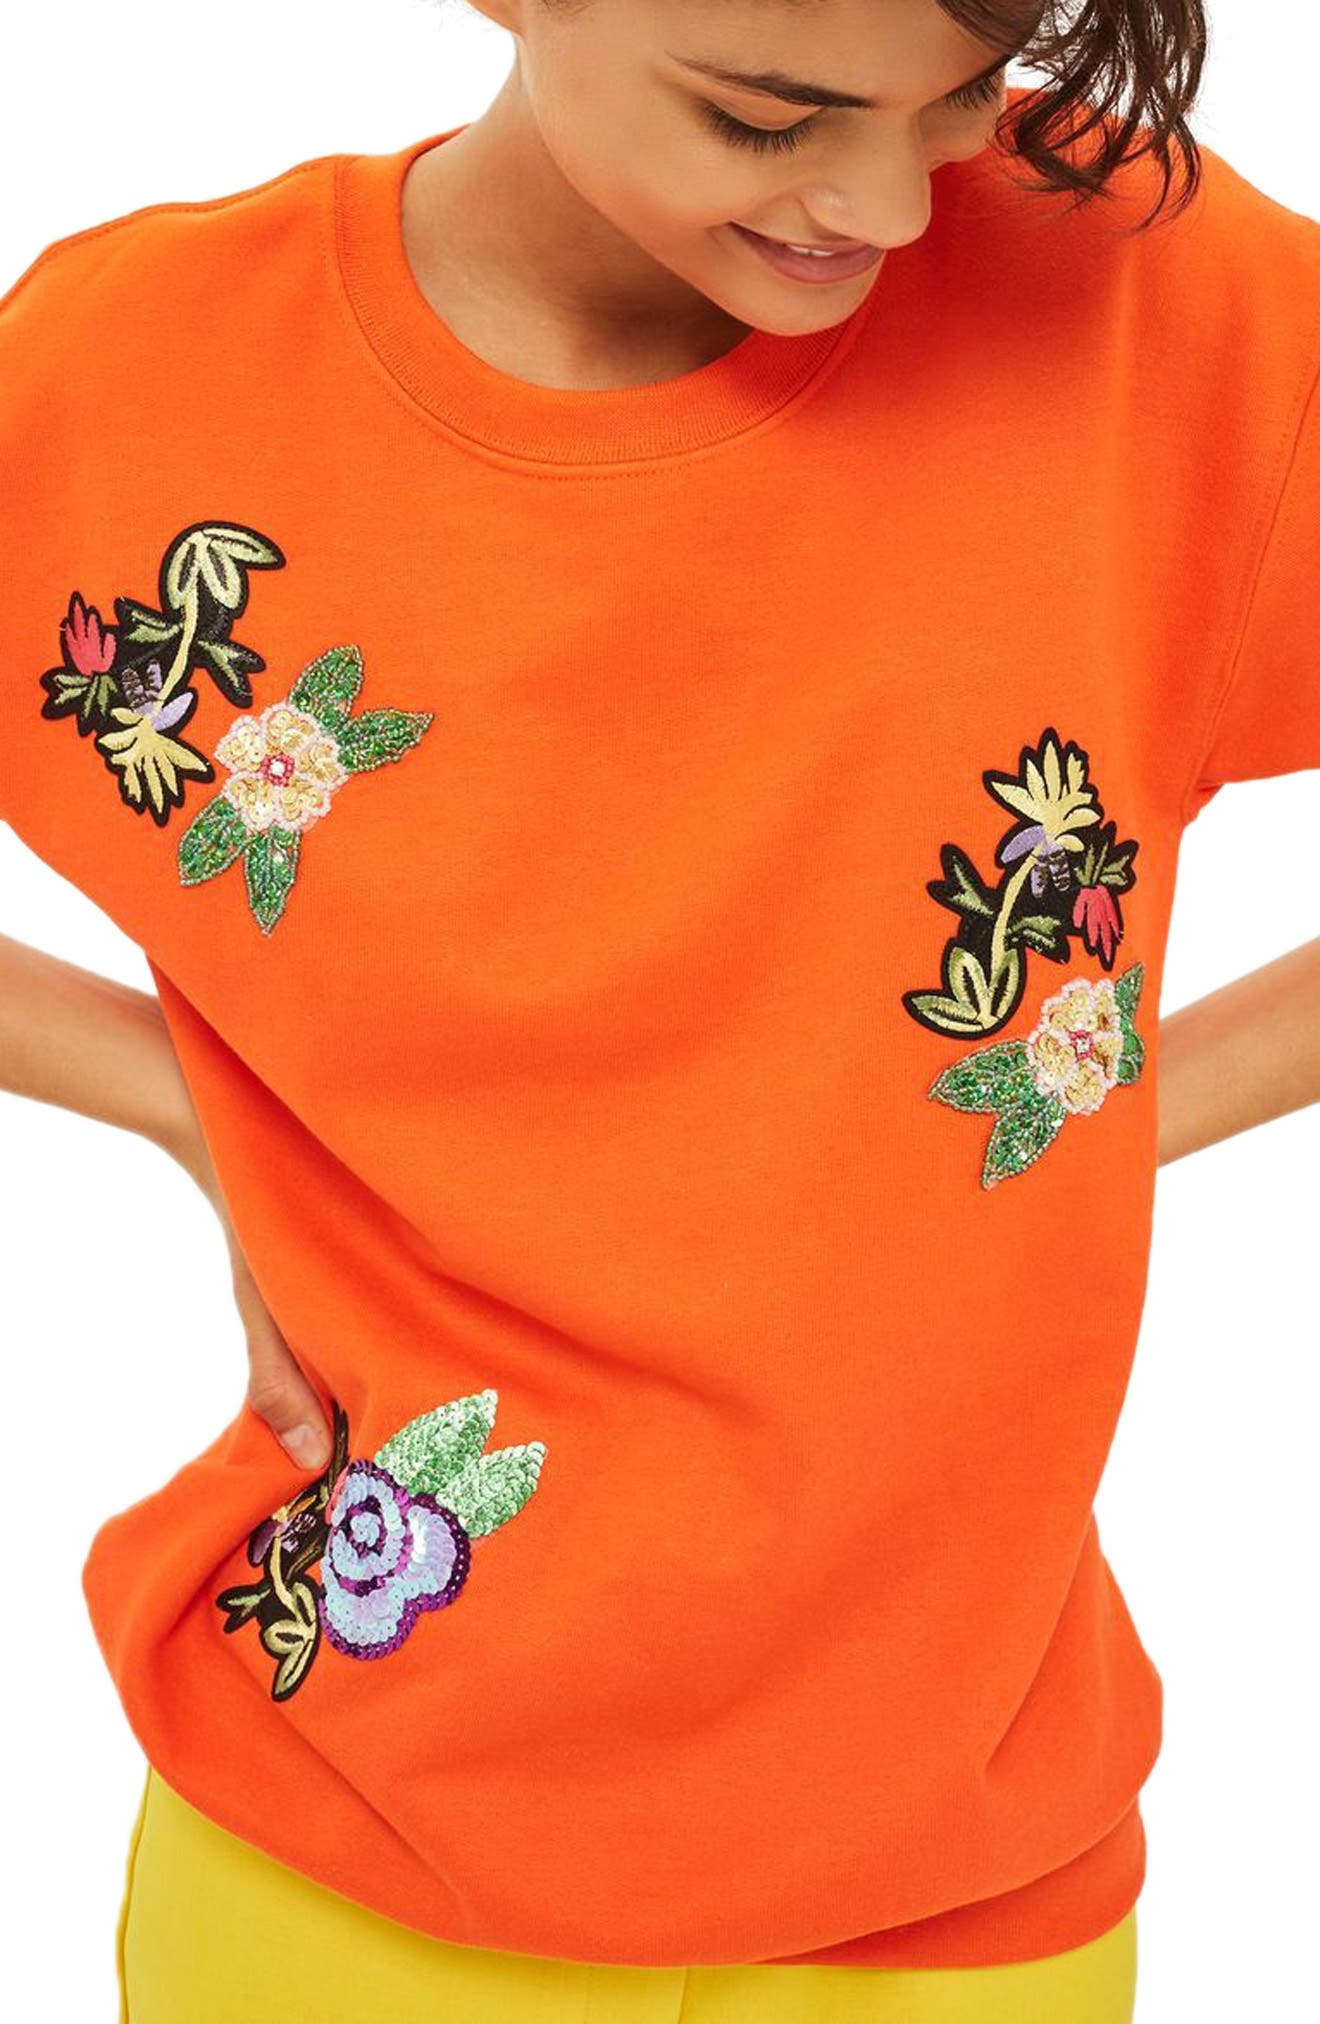 Floral Appliqué Embroidered Sweatshirt,                             Main thumbnail 1, color,                             Orange Multi